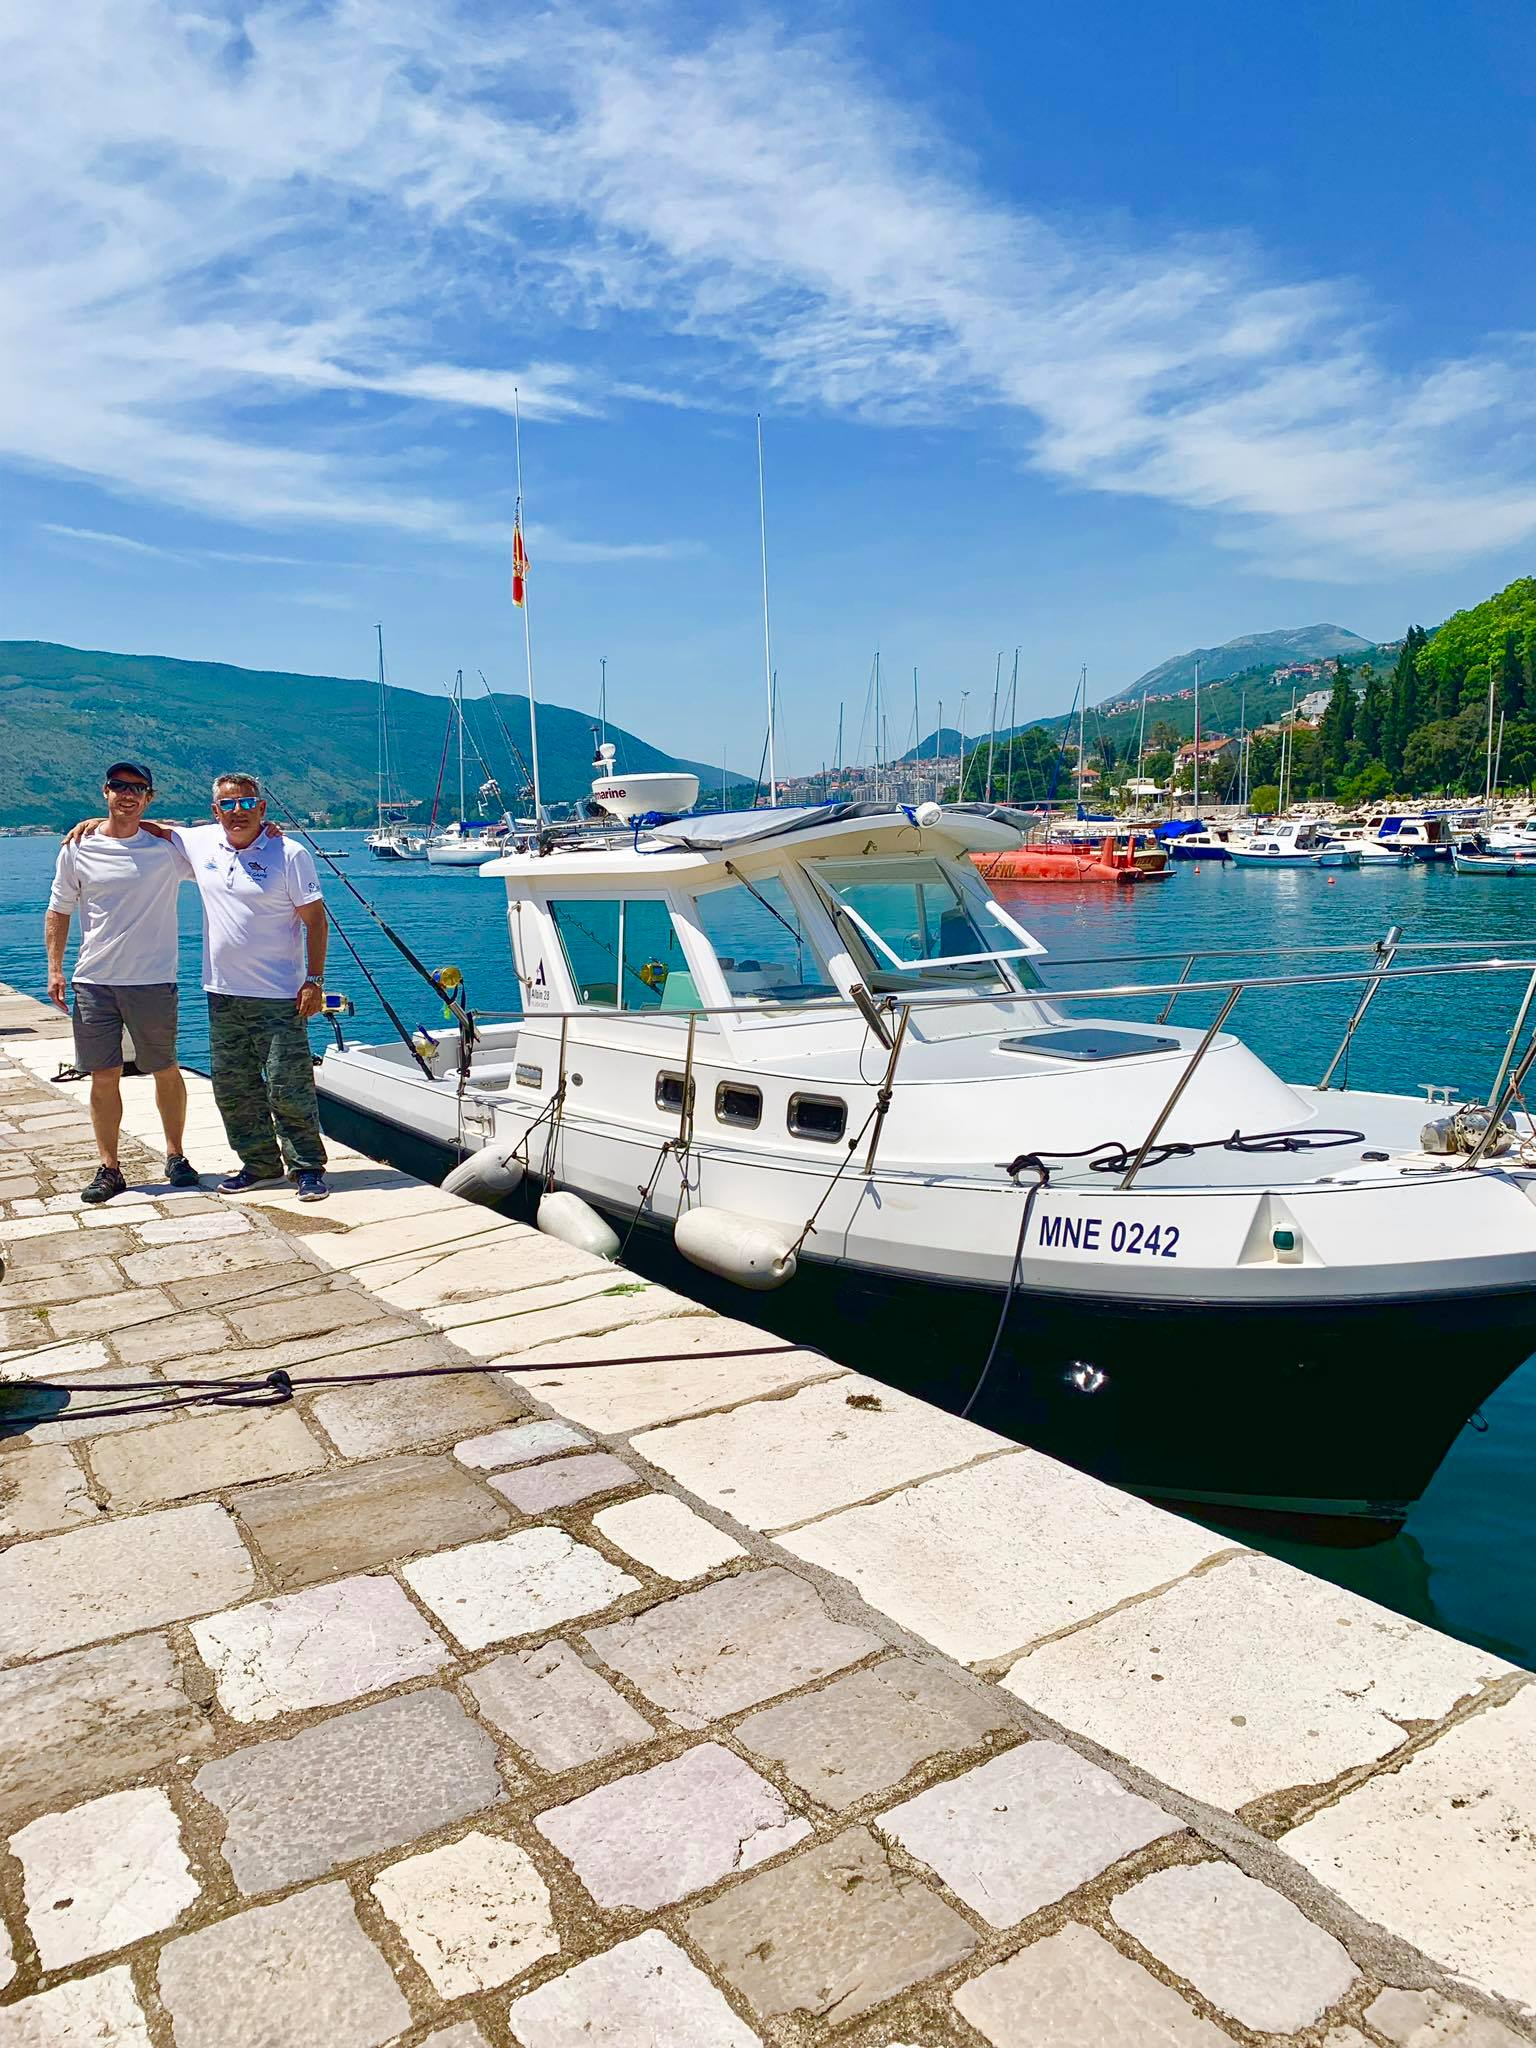 Expat Life in Montenegro Day 8 Fishing Trip to the Adriatic Sea21.jpg